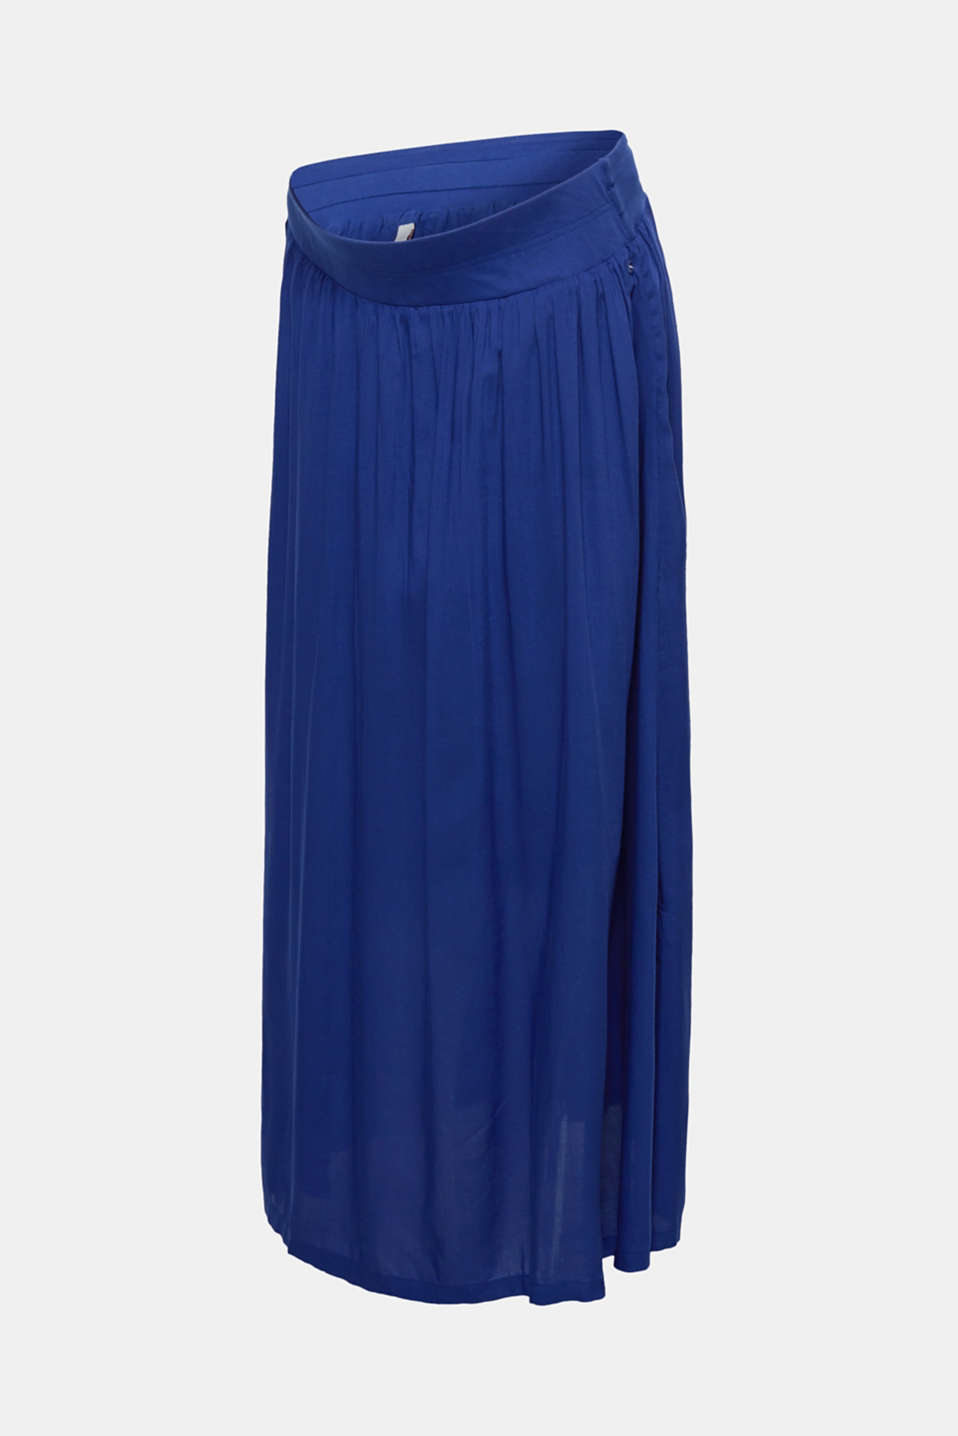 Woven maxi skirt with a below-bump waistband, LCDARK BLUE, detail image number 6